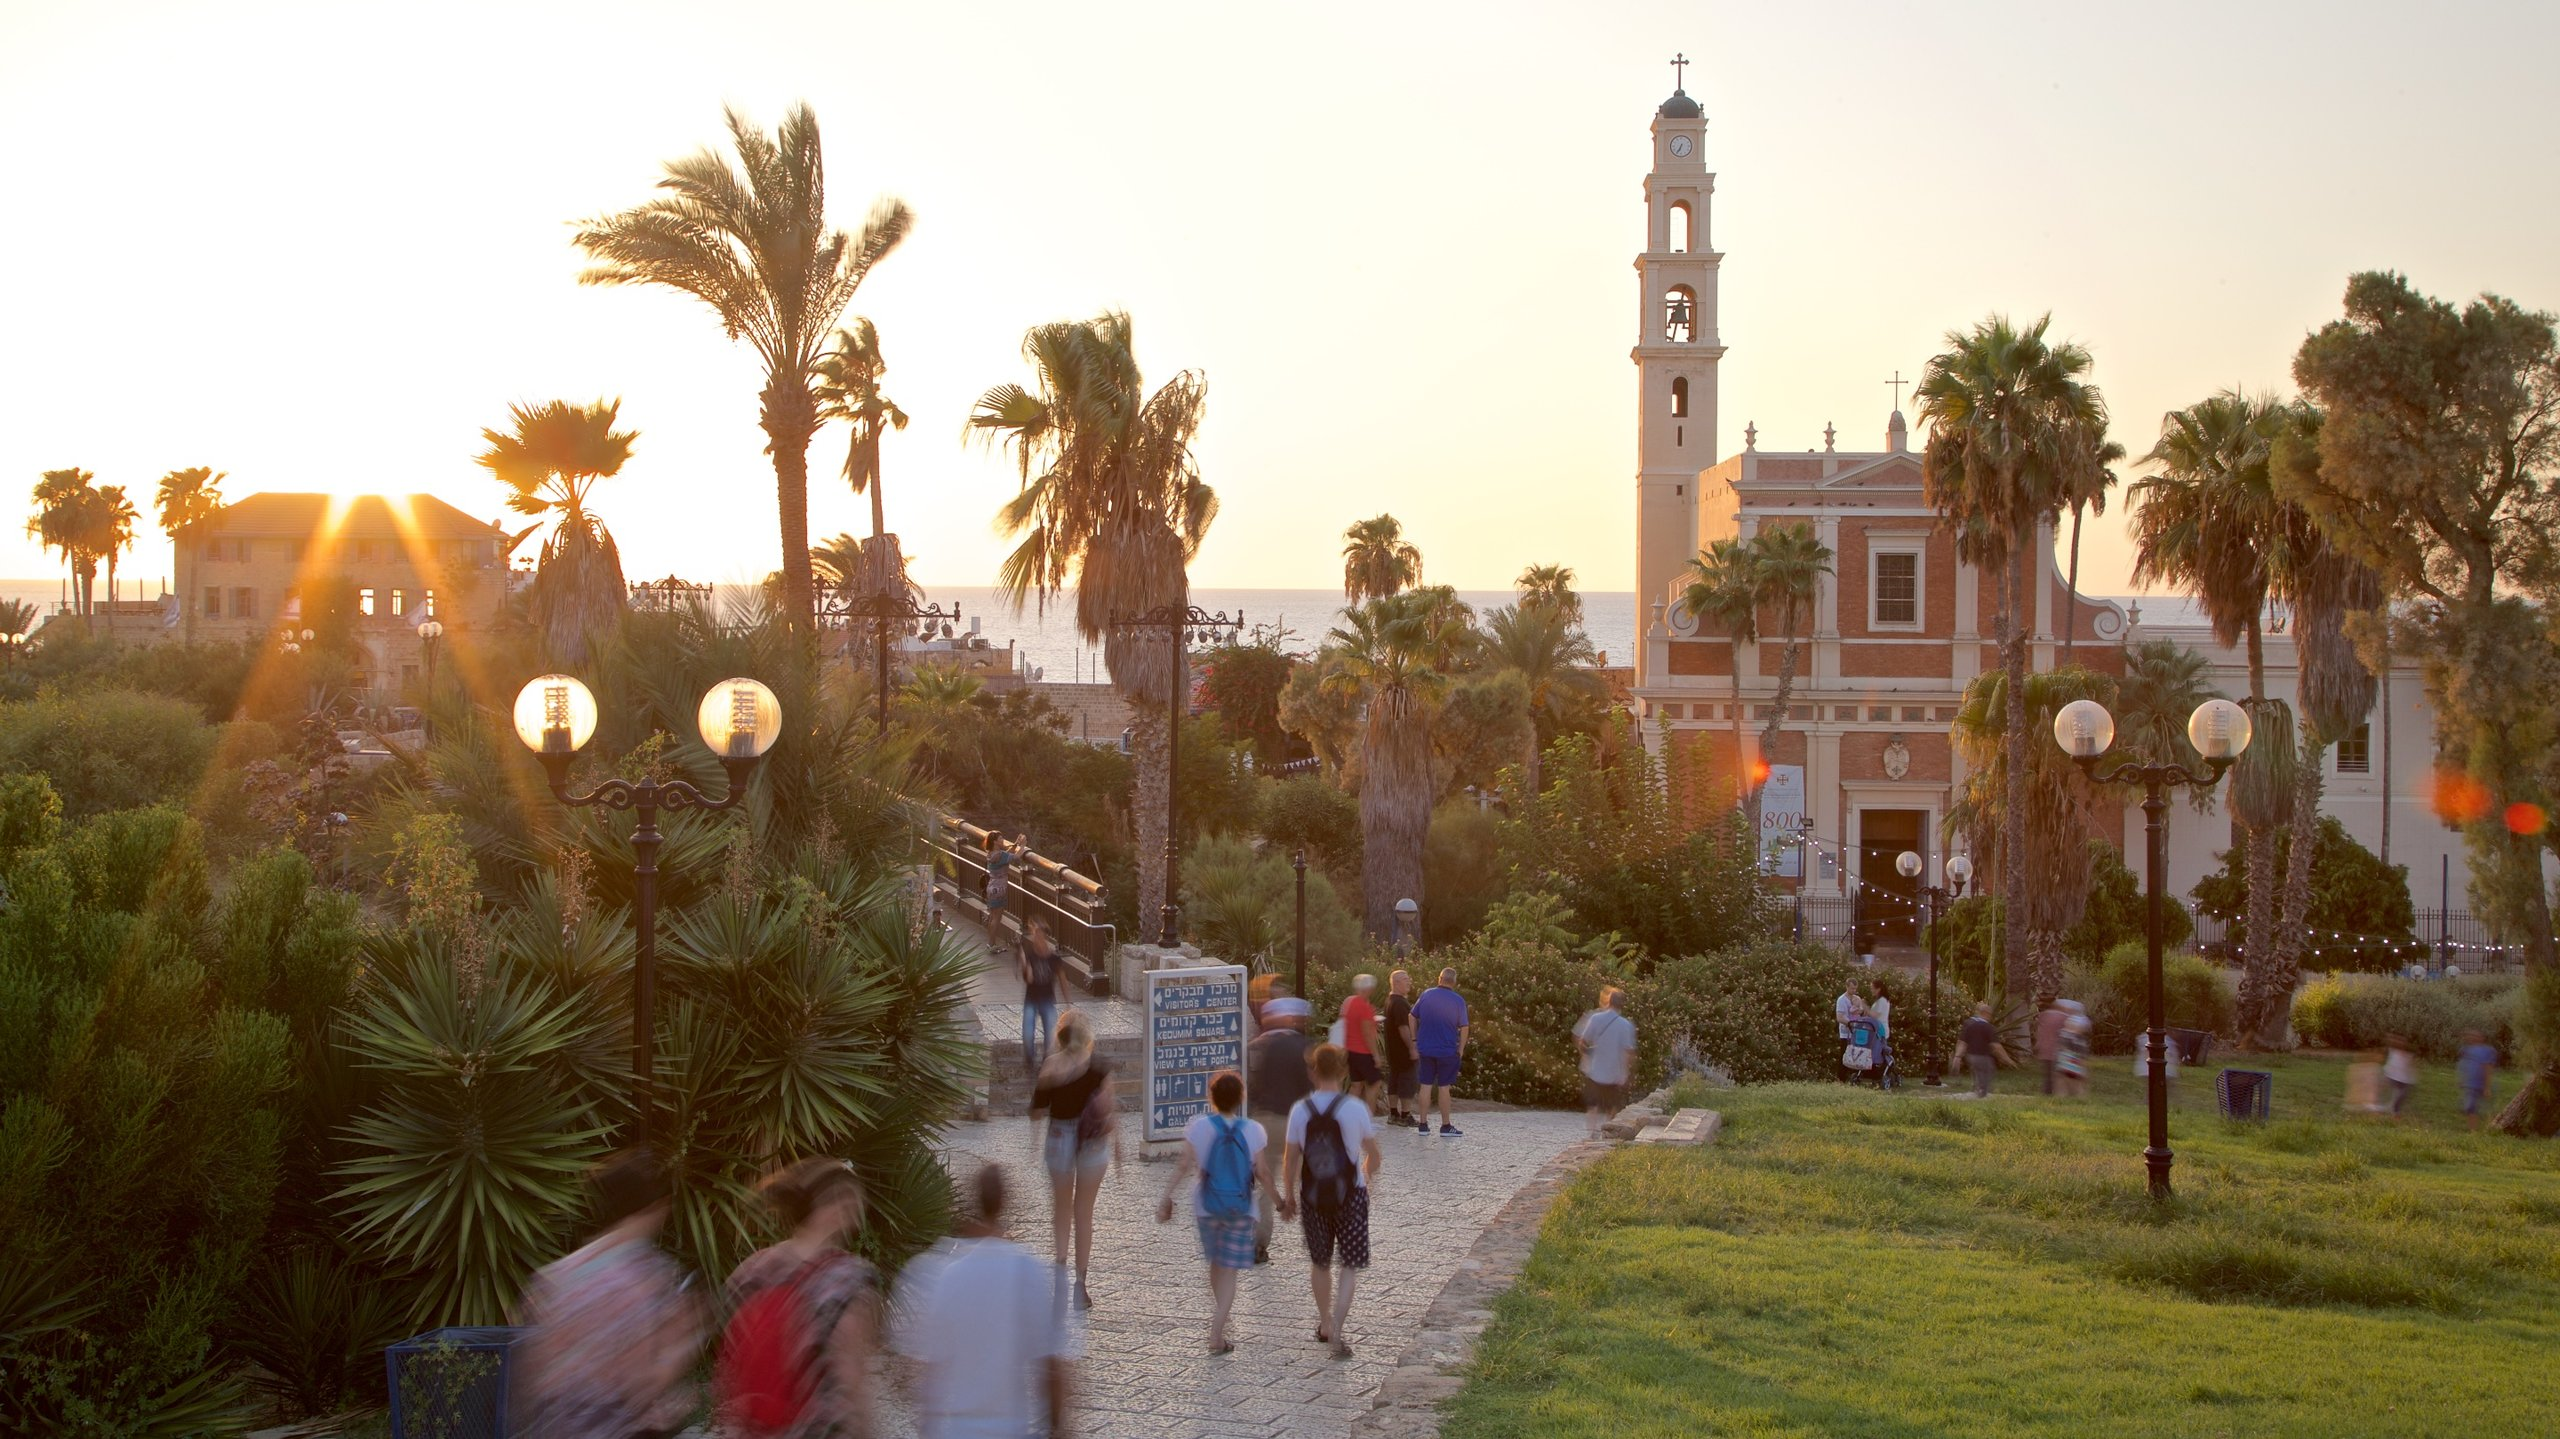 Historic Hotels In Tel Aviv - Find 2019 Hotel Deals ...